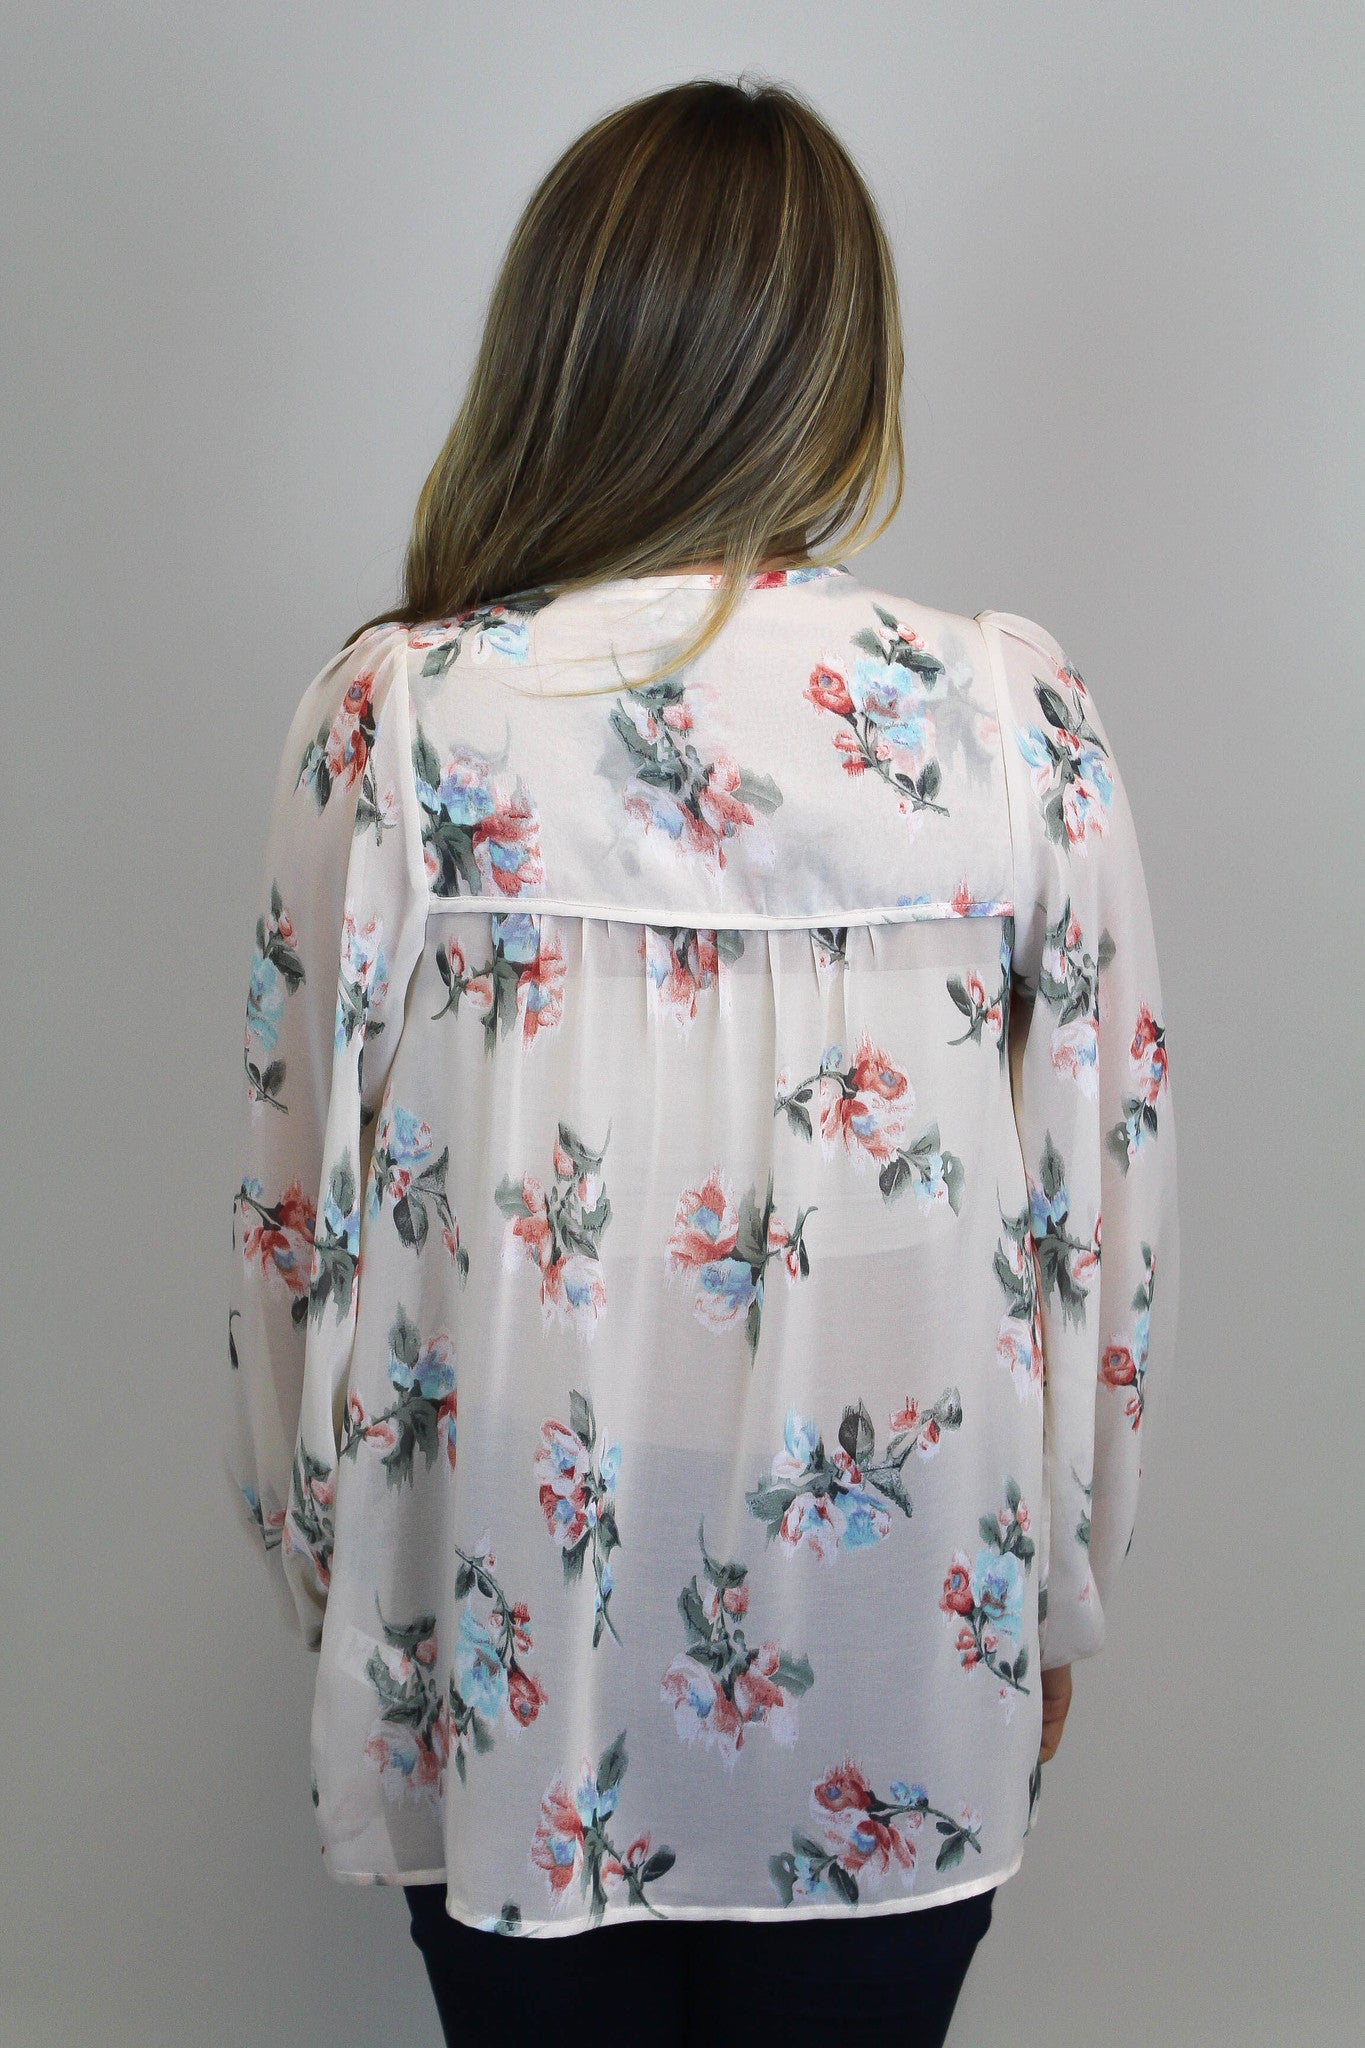 Floral Print Long Slv. Top